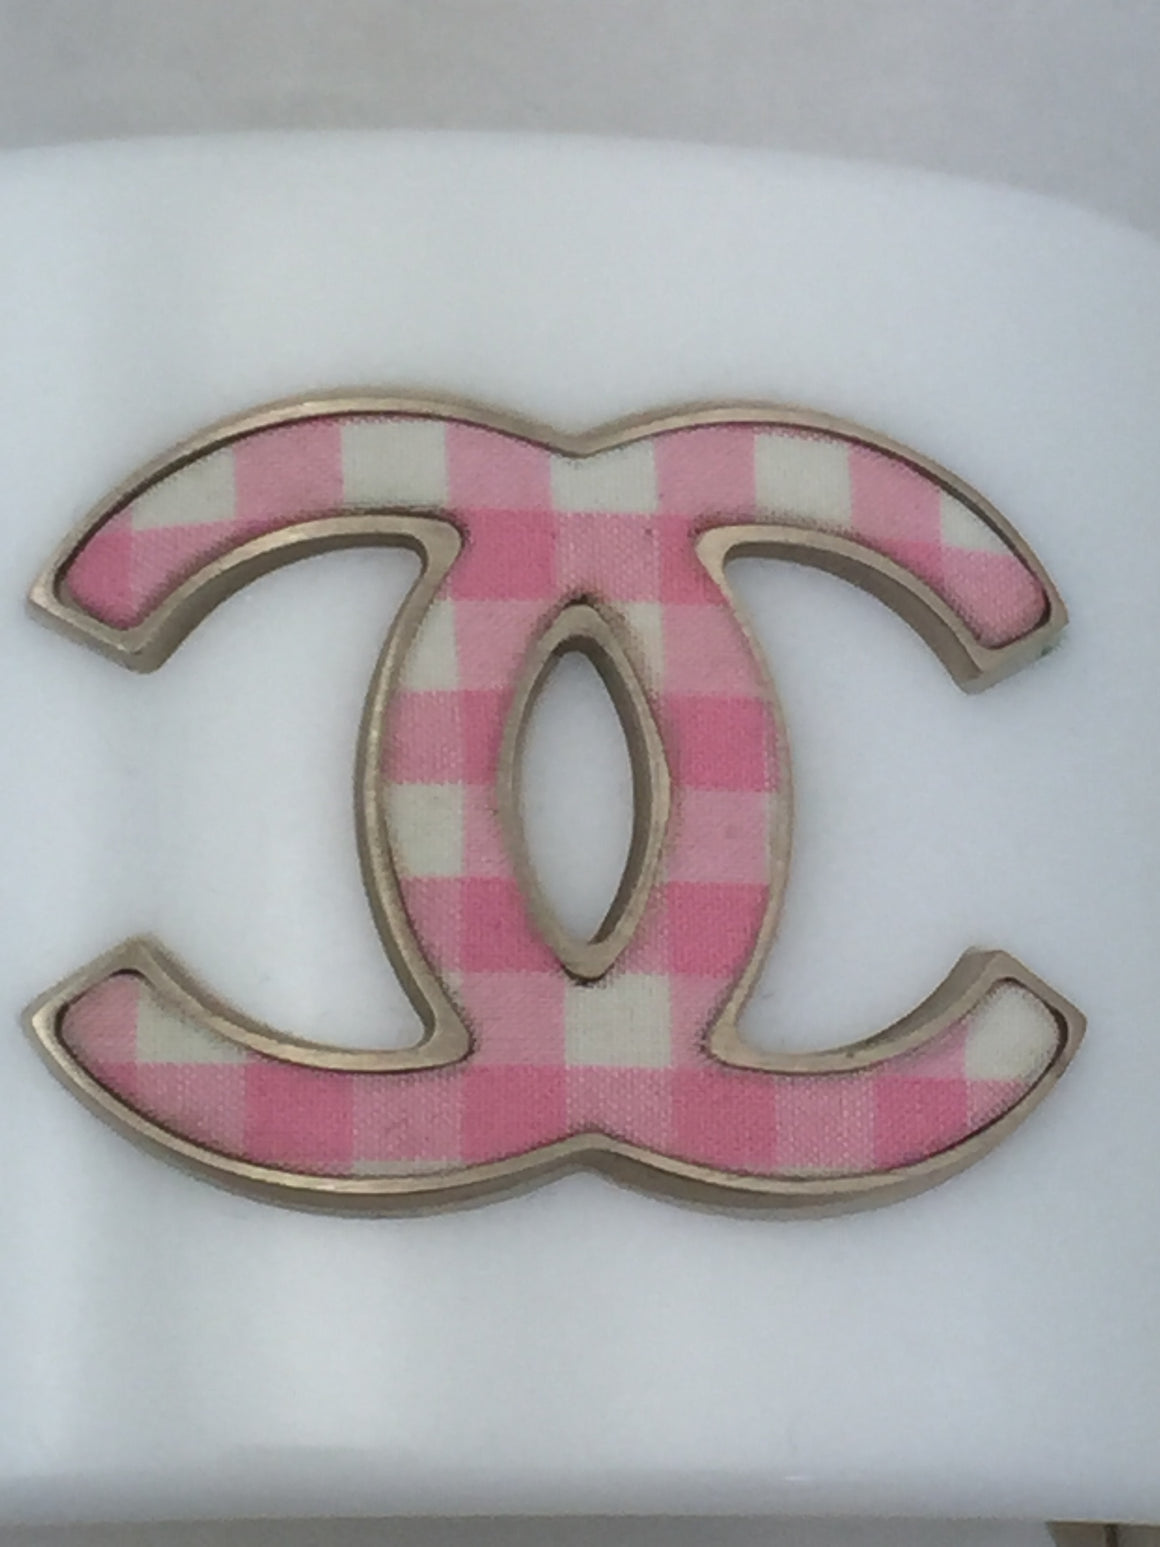 Chanel White & Pink Enamel CC Bracelet - New York Authentic Designer - Chanel